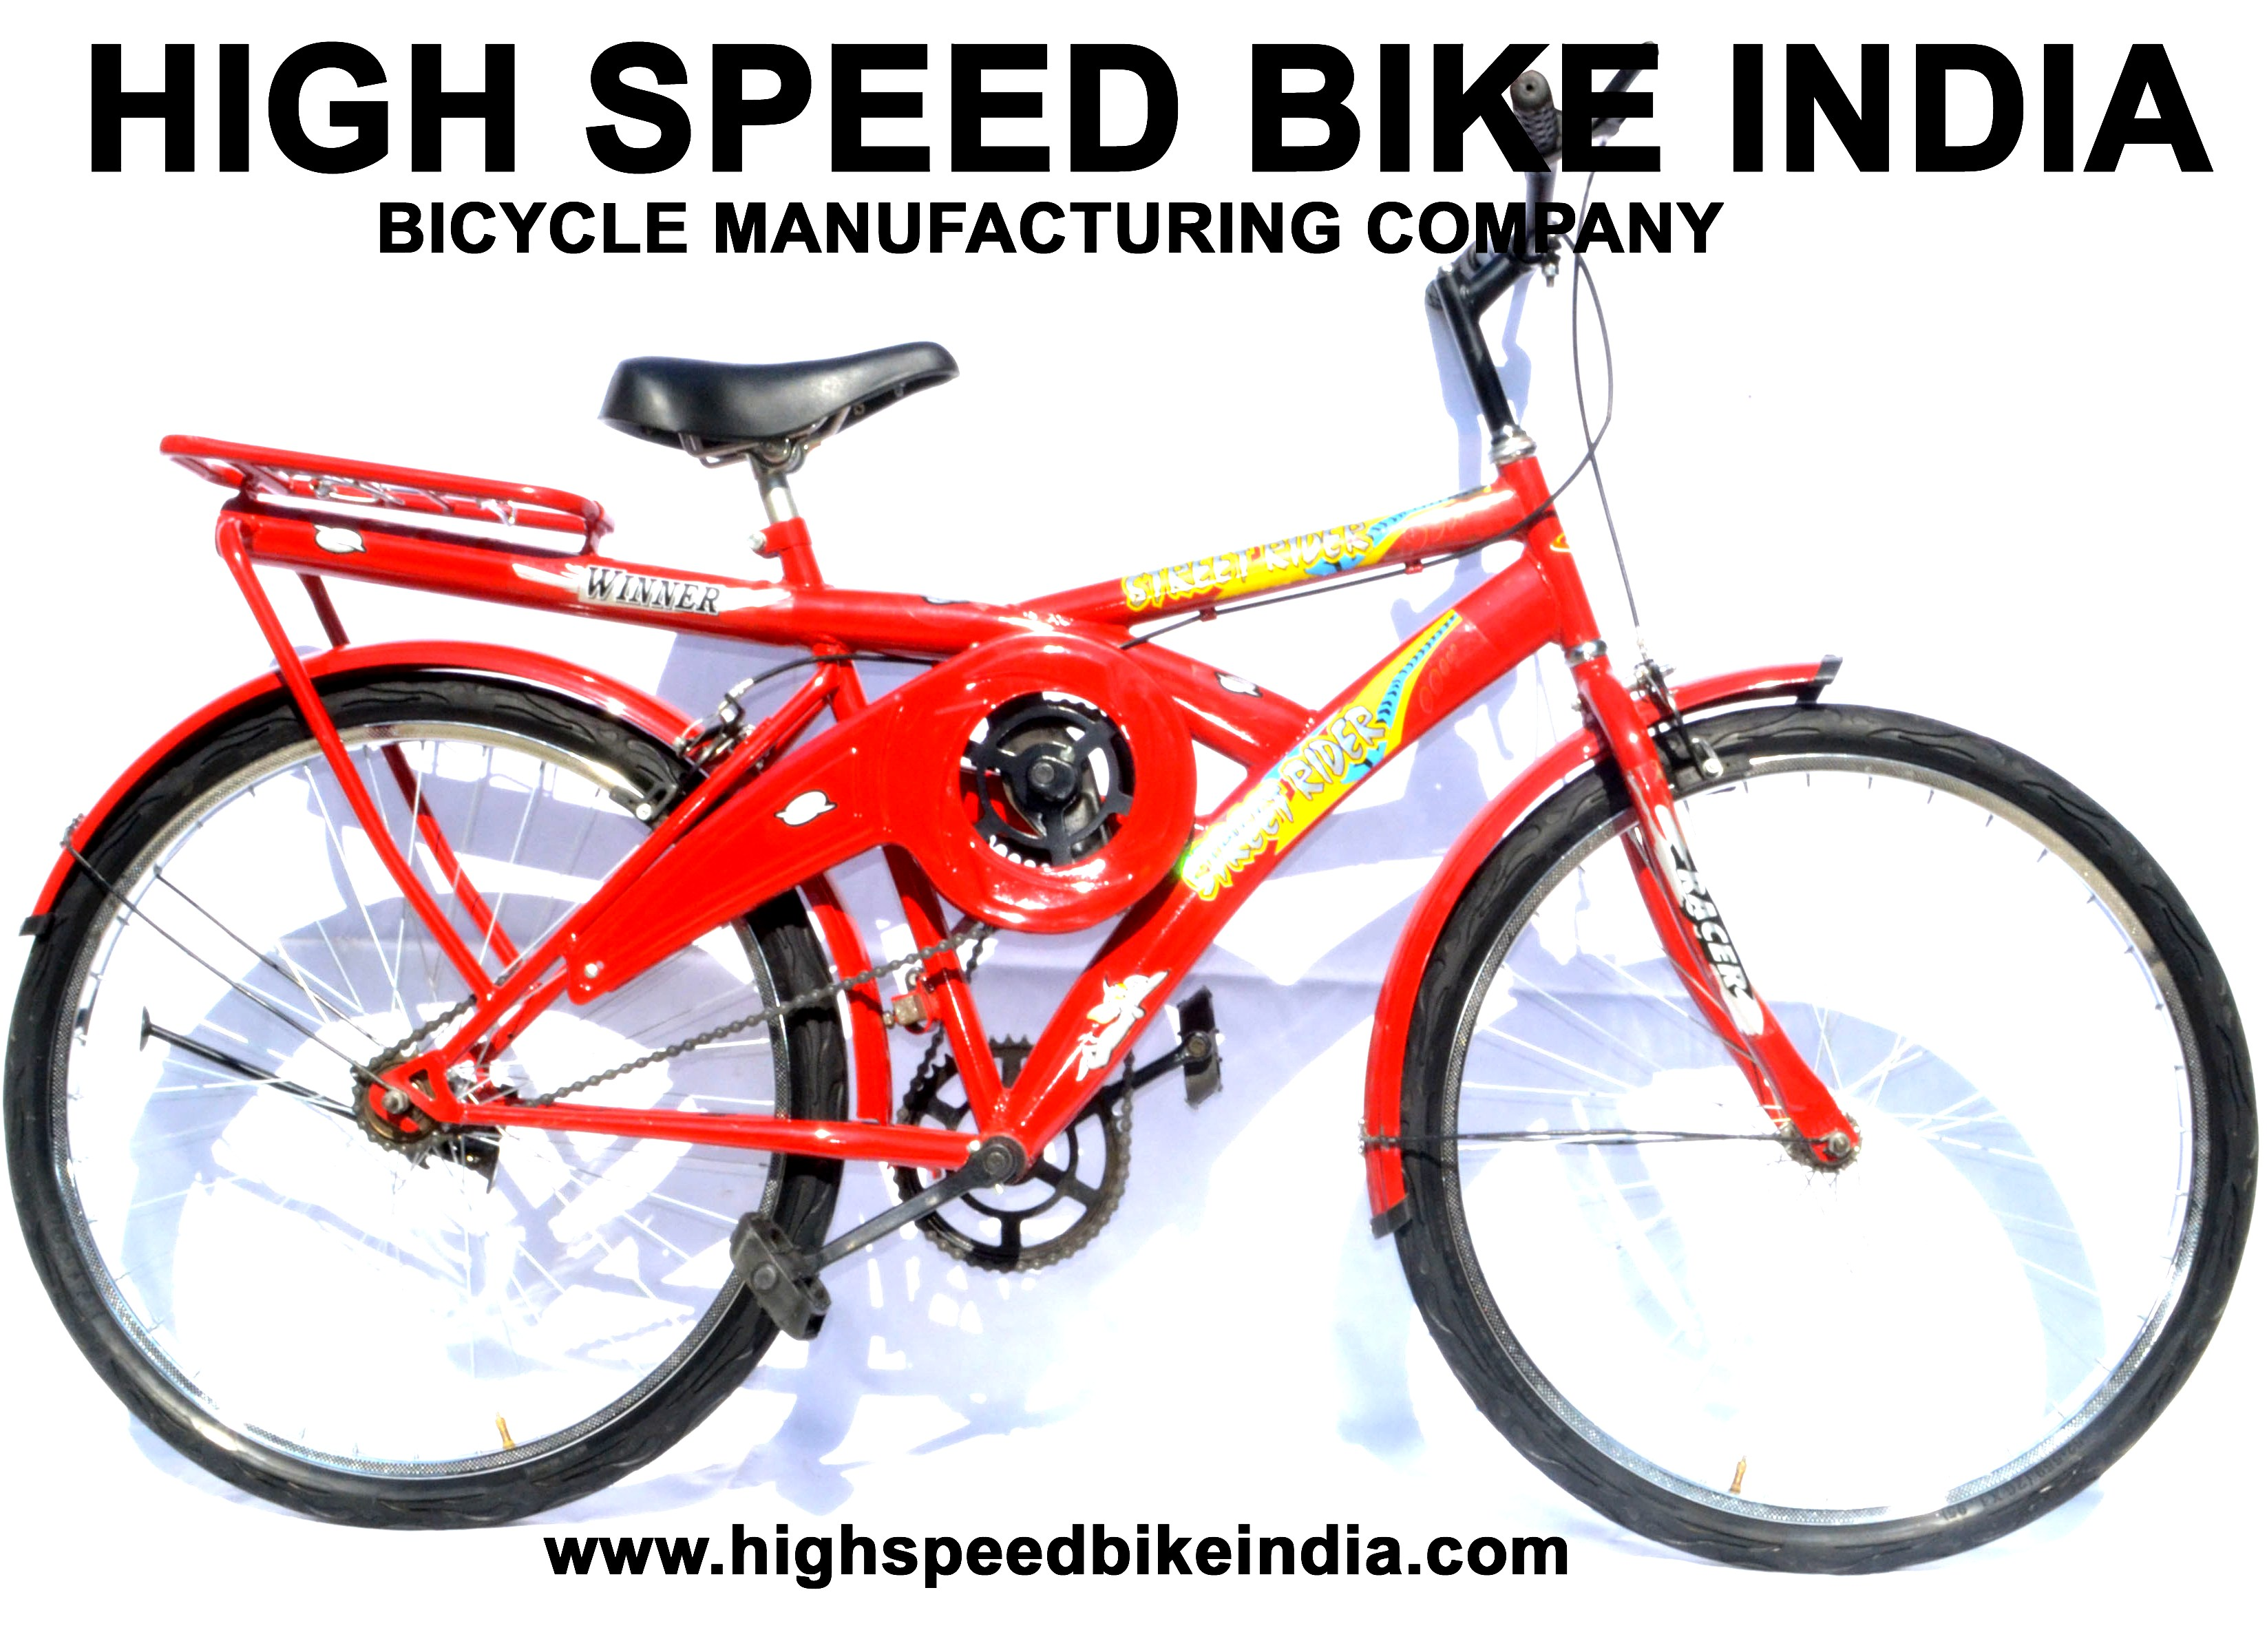 HIGH SPEED BIKE INDIA Main Image